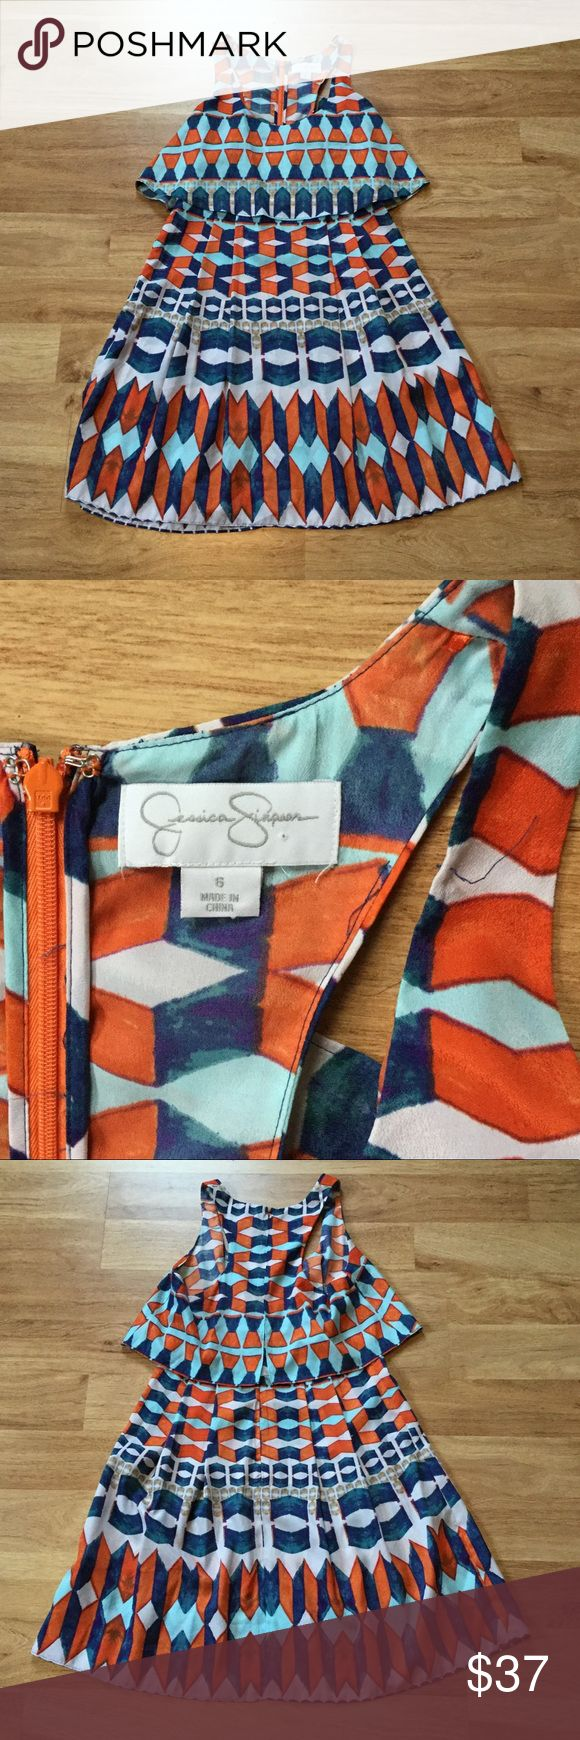 "Jessica Simpson summer tribal print dress Perfect condition, no defects. No lining, but nice and light for summer. Zips up the back with hook and eye closure. See size chart for measurements. Shoulder to hem 33.5"". Jessica Simpson Dresses"